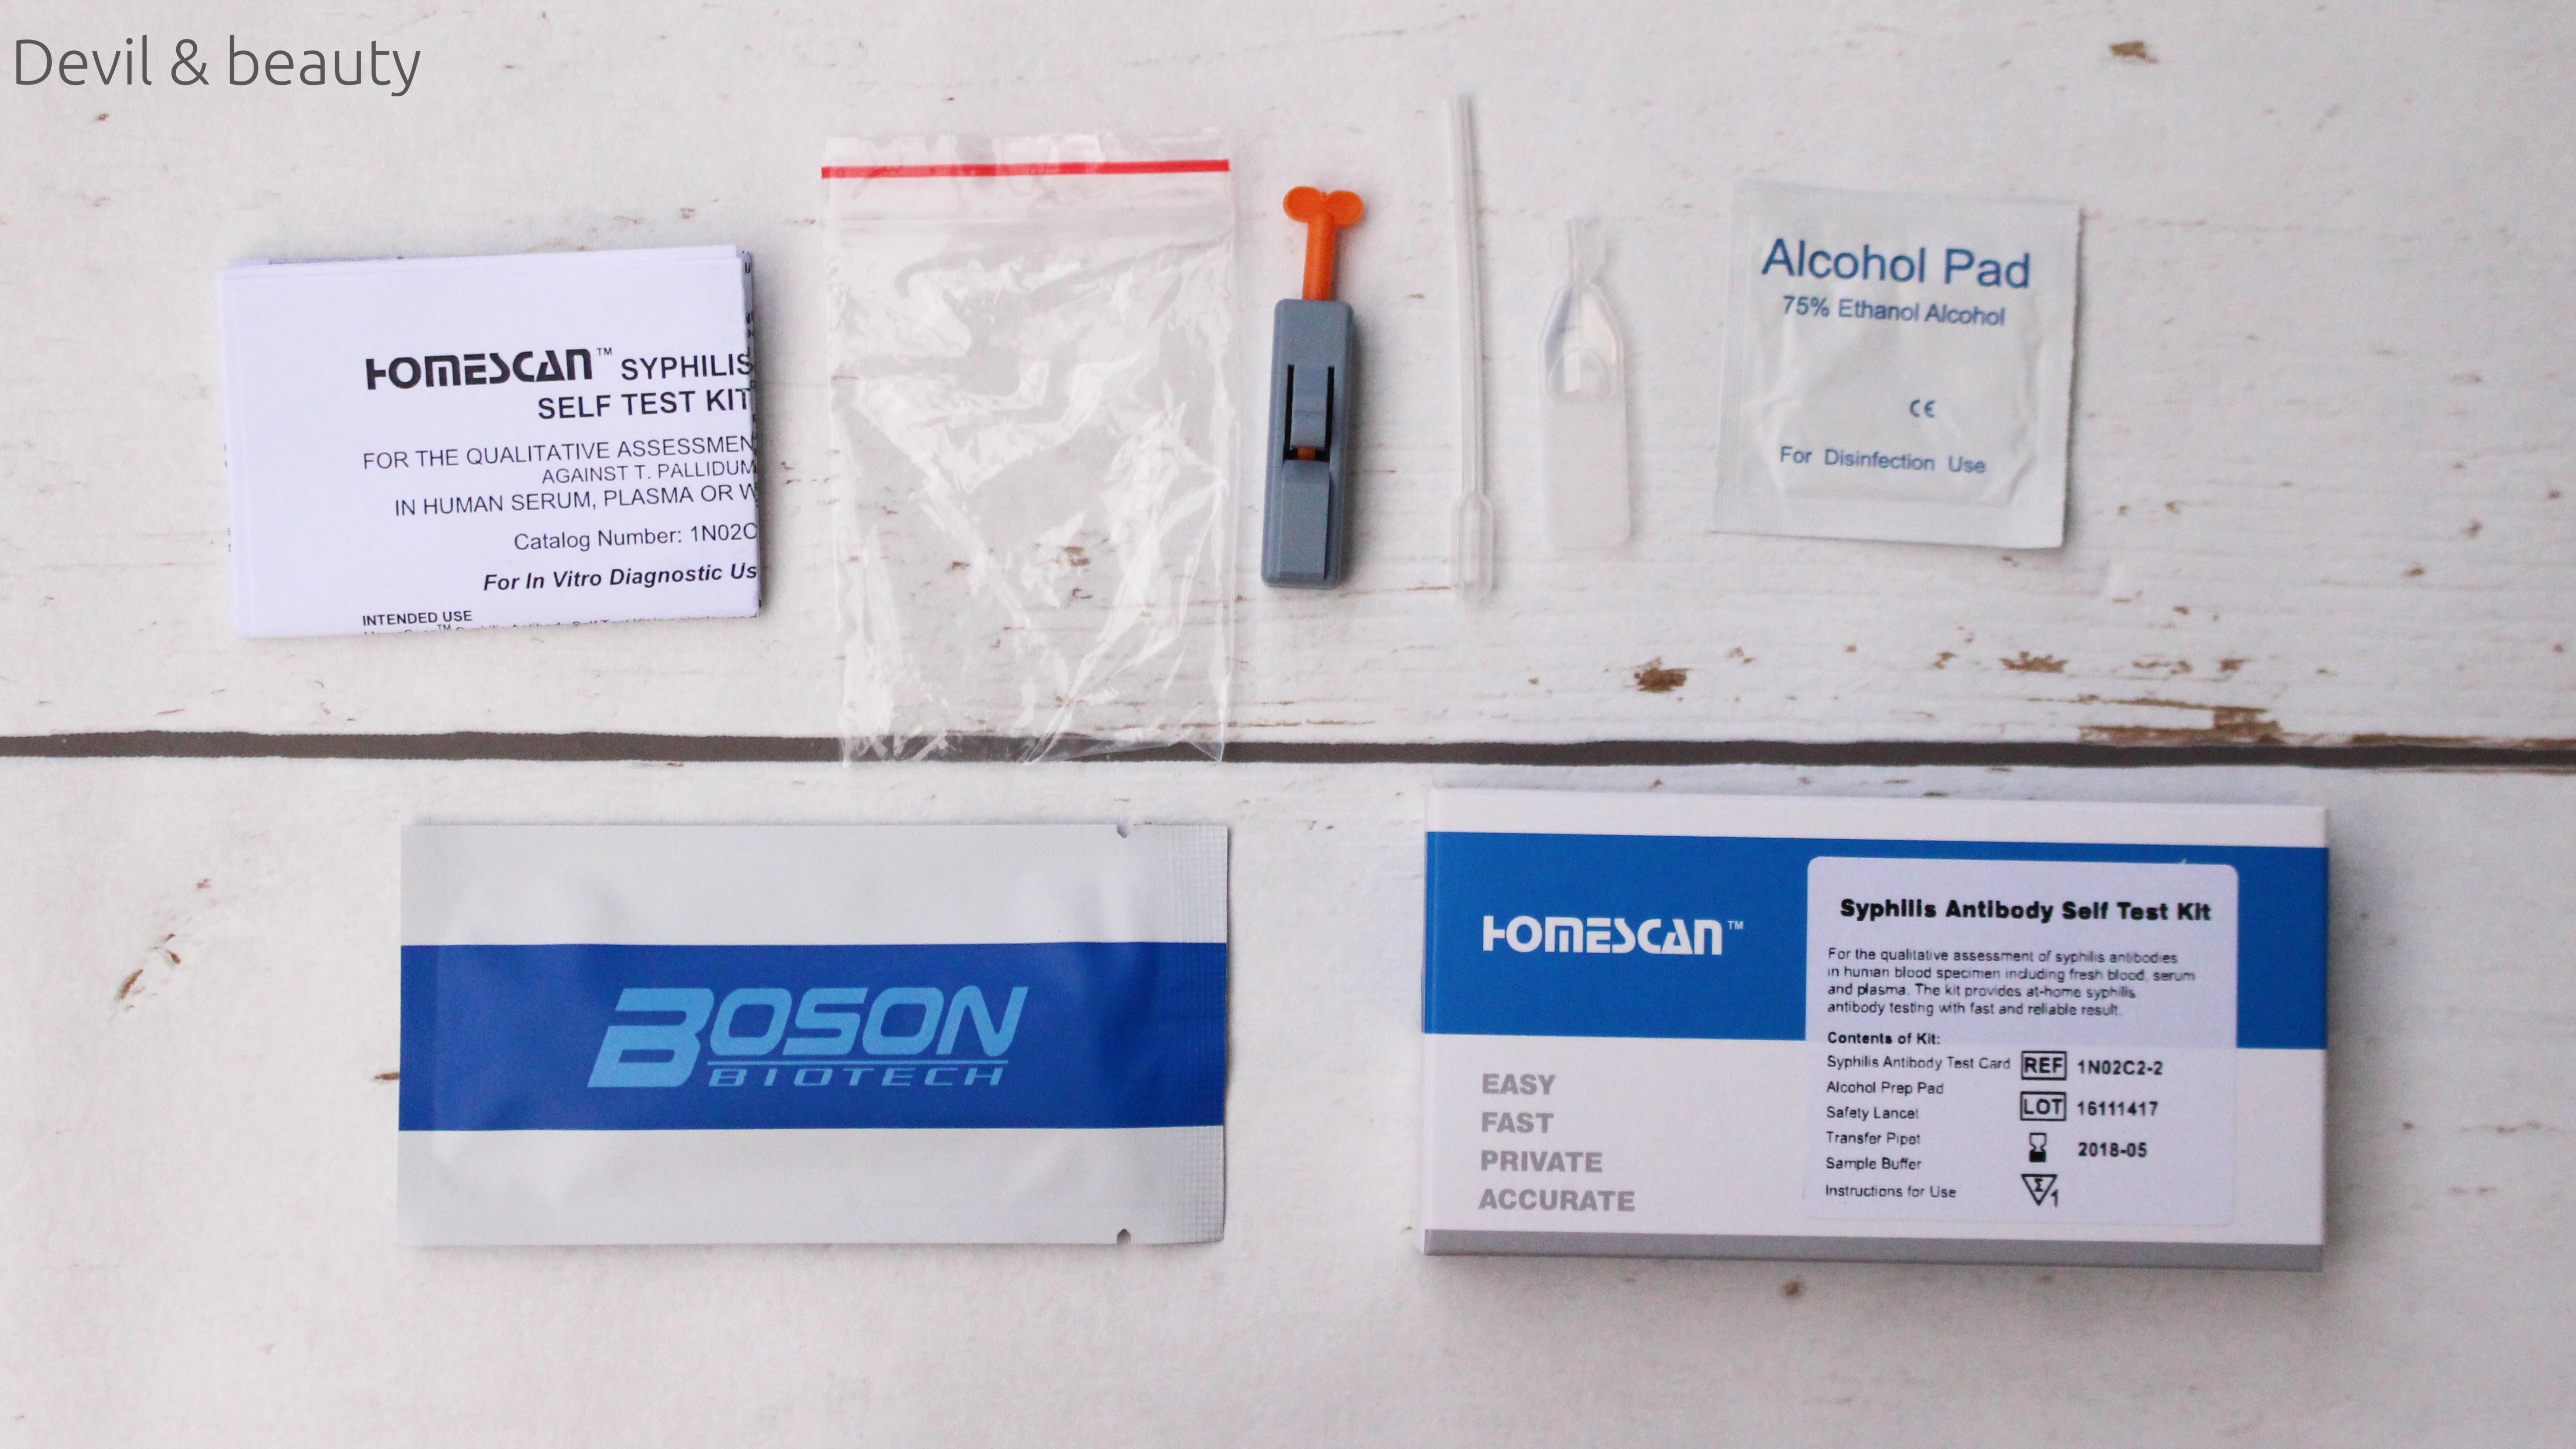 boson-syphilis-antiboby-self-test-kit4 - image